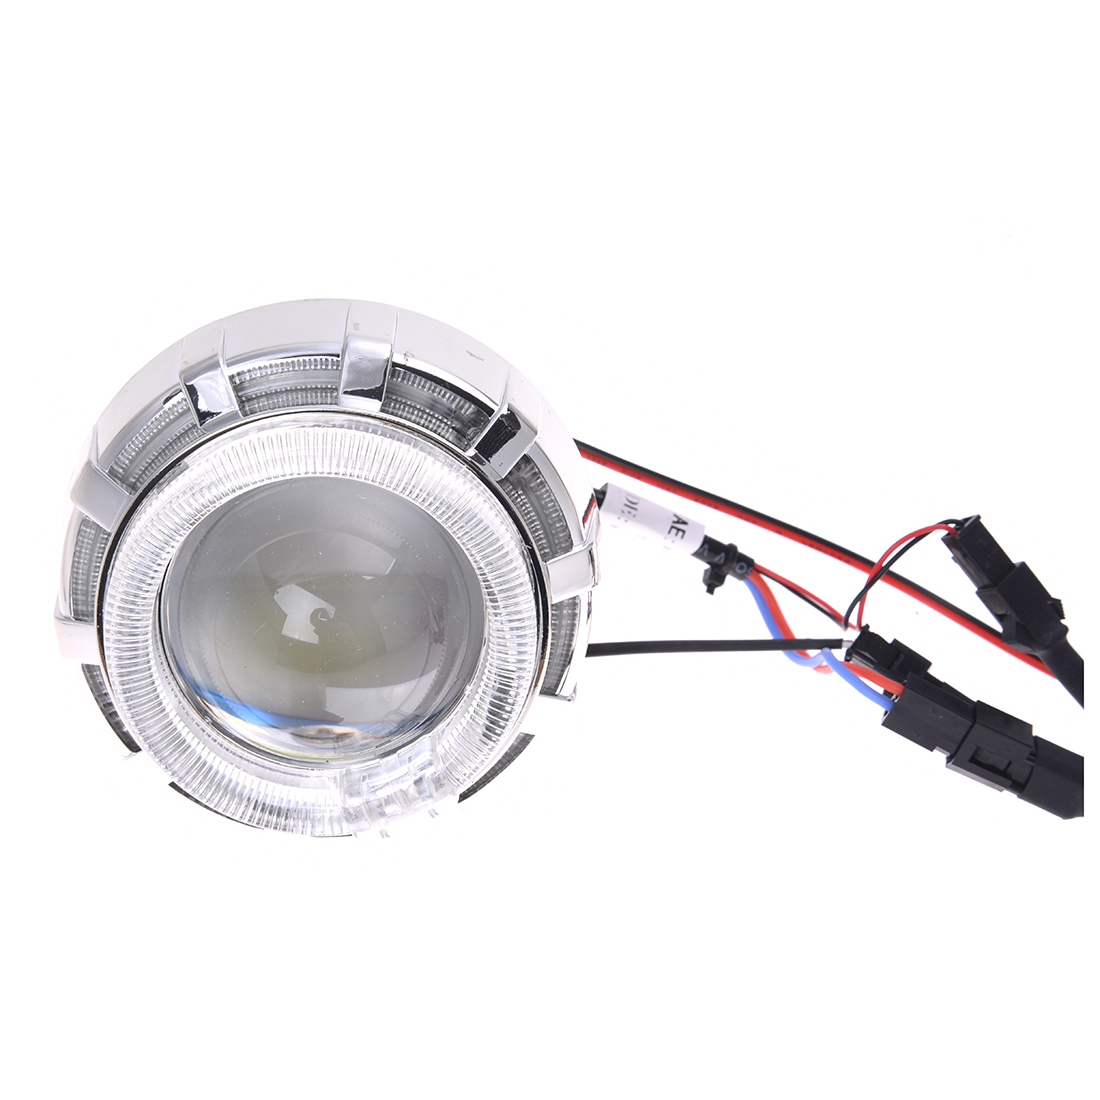 LED Projector Kit Hi/Low Beam Headlight For Motorcycle Blue Red Angel Devil Eyes гарнитура hi fun hi head red blue